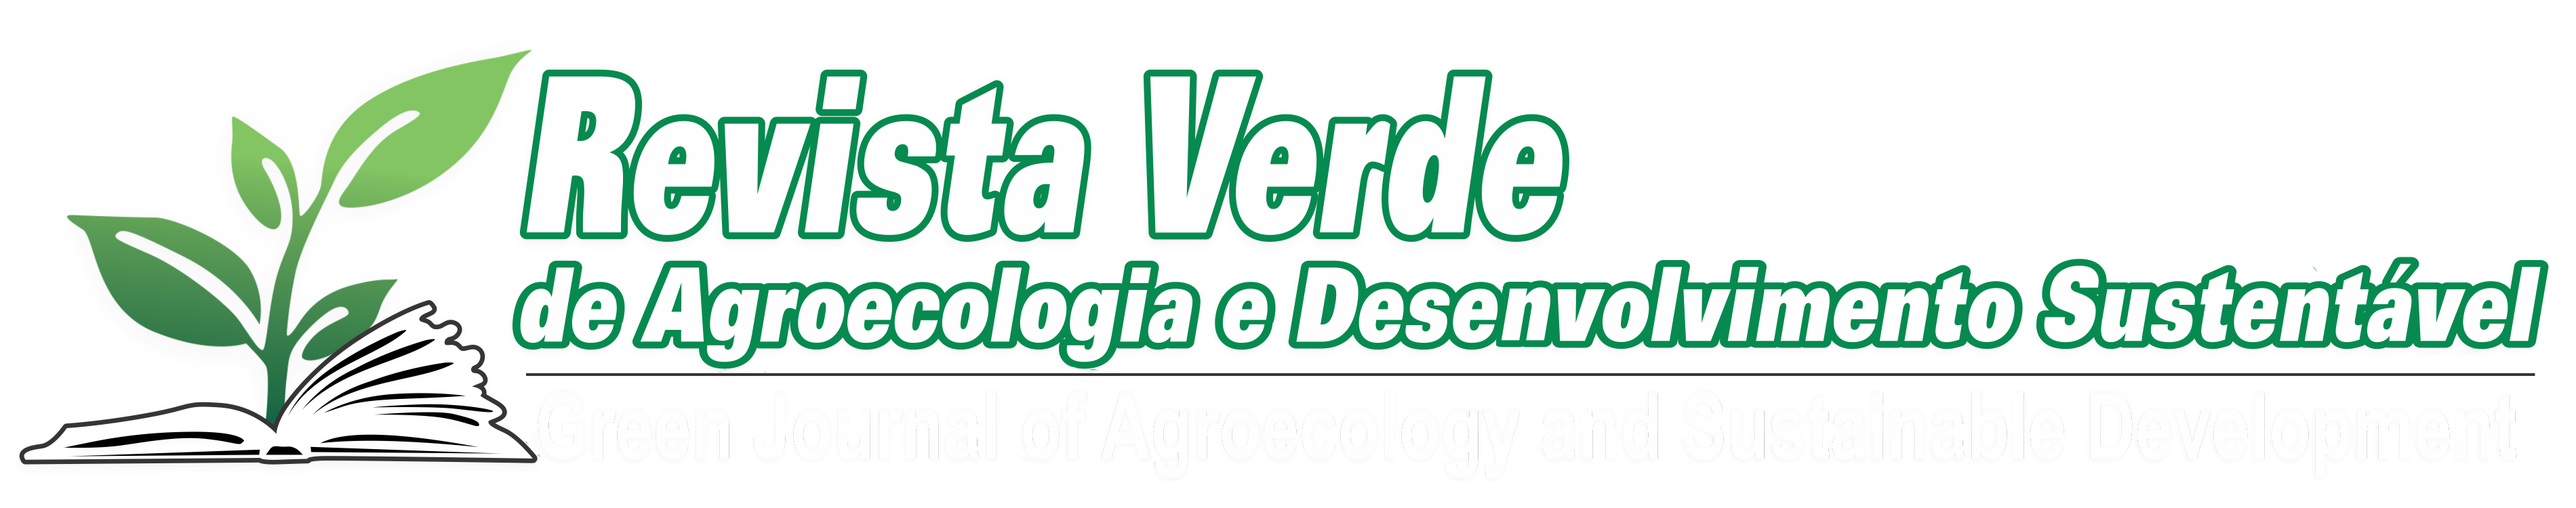 Green Journal of Agroecology and Sustainable Development